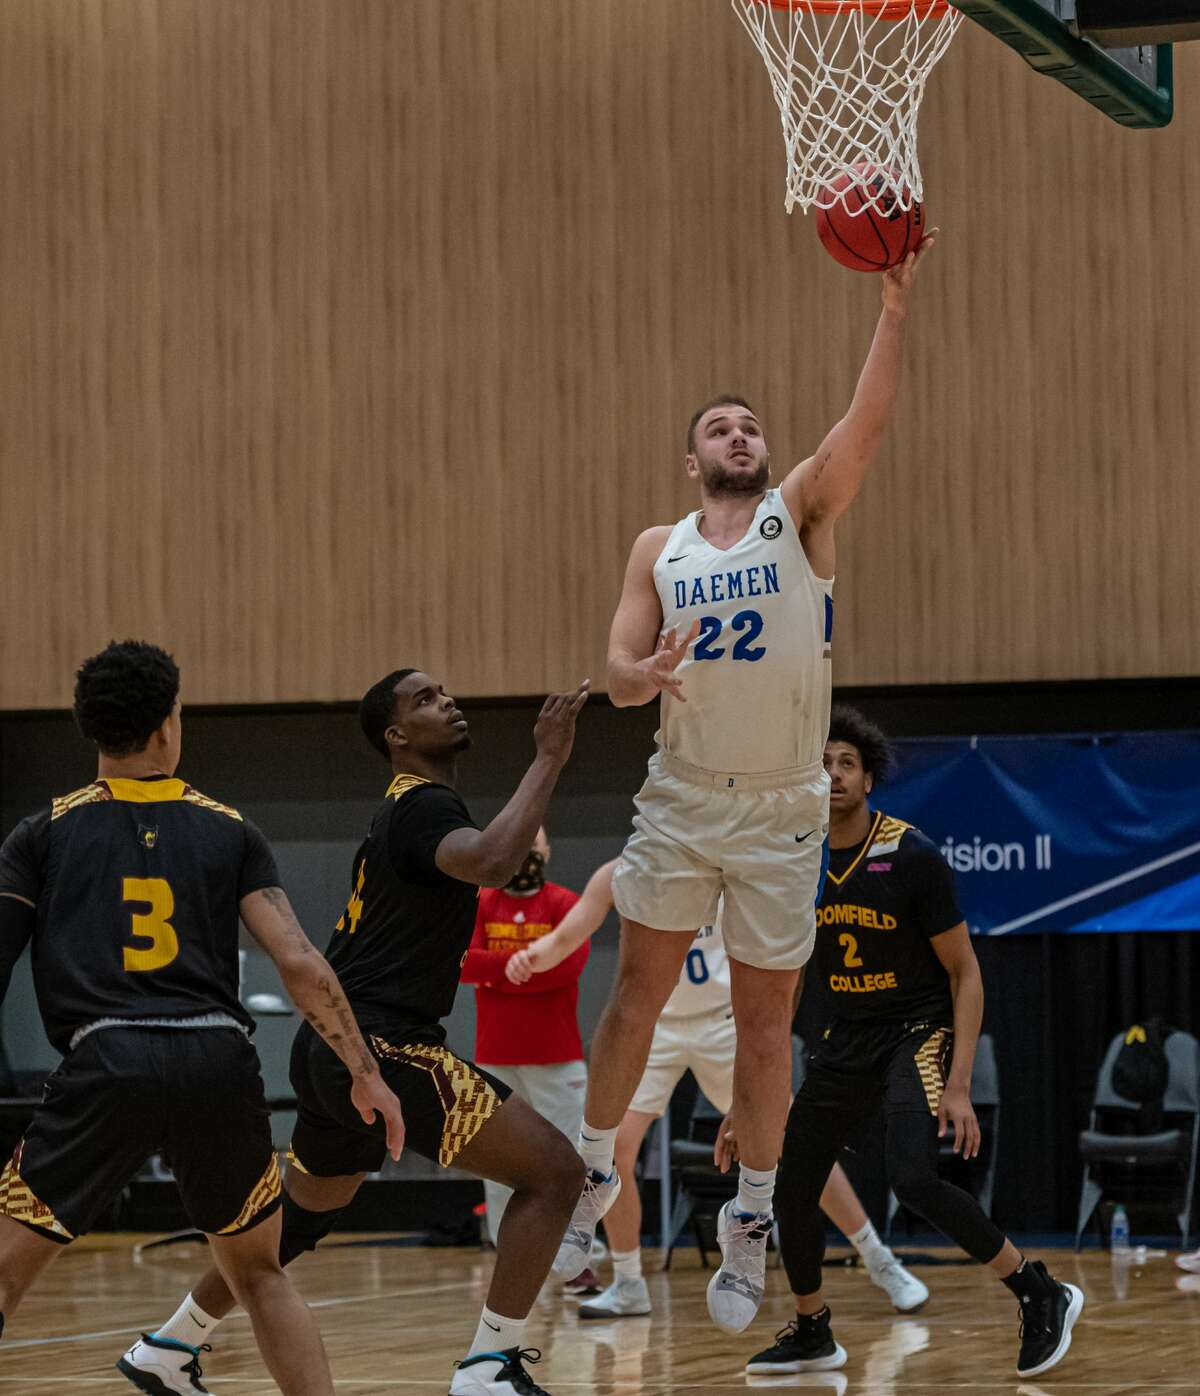 Daemen senior center Andrew Sischo, a Guilderland native, scores on a layup in the first half of an NCAA Division II regional basketball game against Bloomfield on Sunday, March 14, 2021, at the Albany Capital Center. (Robert Simmons/ACC)